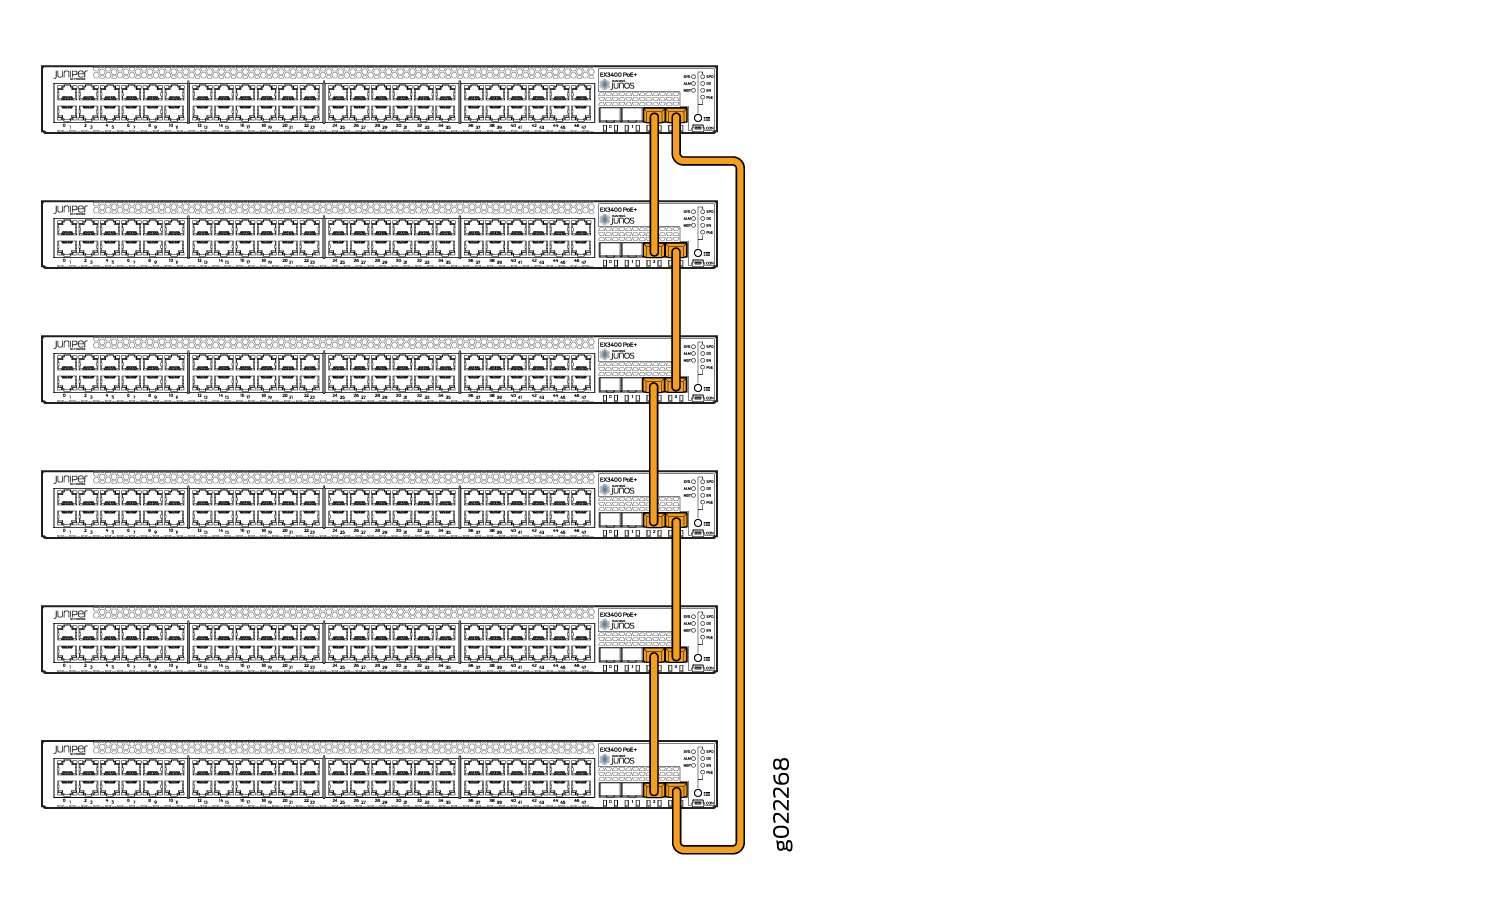 EX3400 Switches Mounted on a Single Rack and Connected in a Ring Topology: Example 2